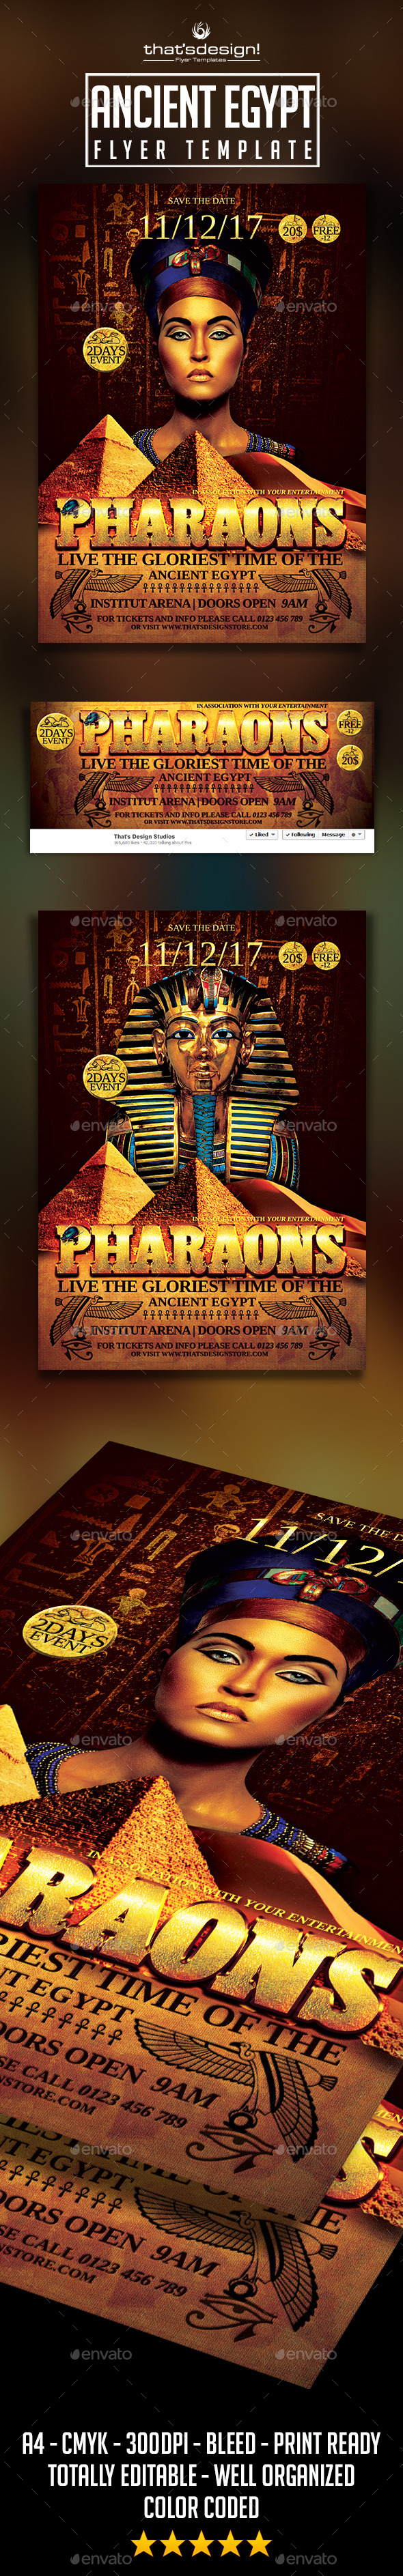 GraphicRiver Ancient Egypt Event Flyer Template 9736849